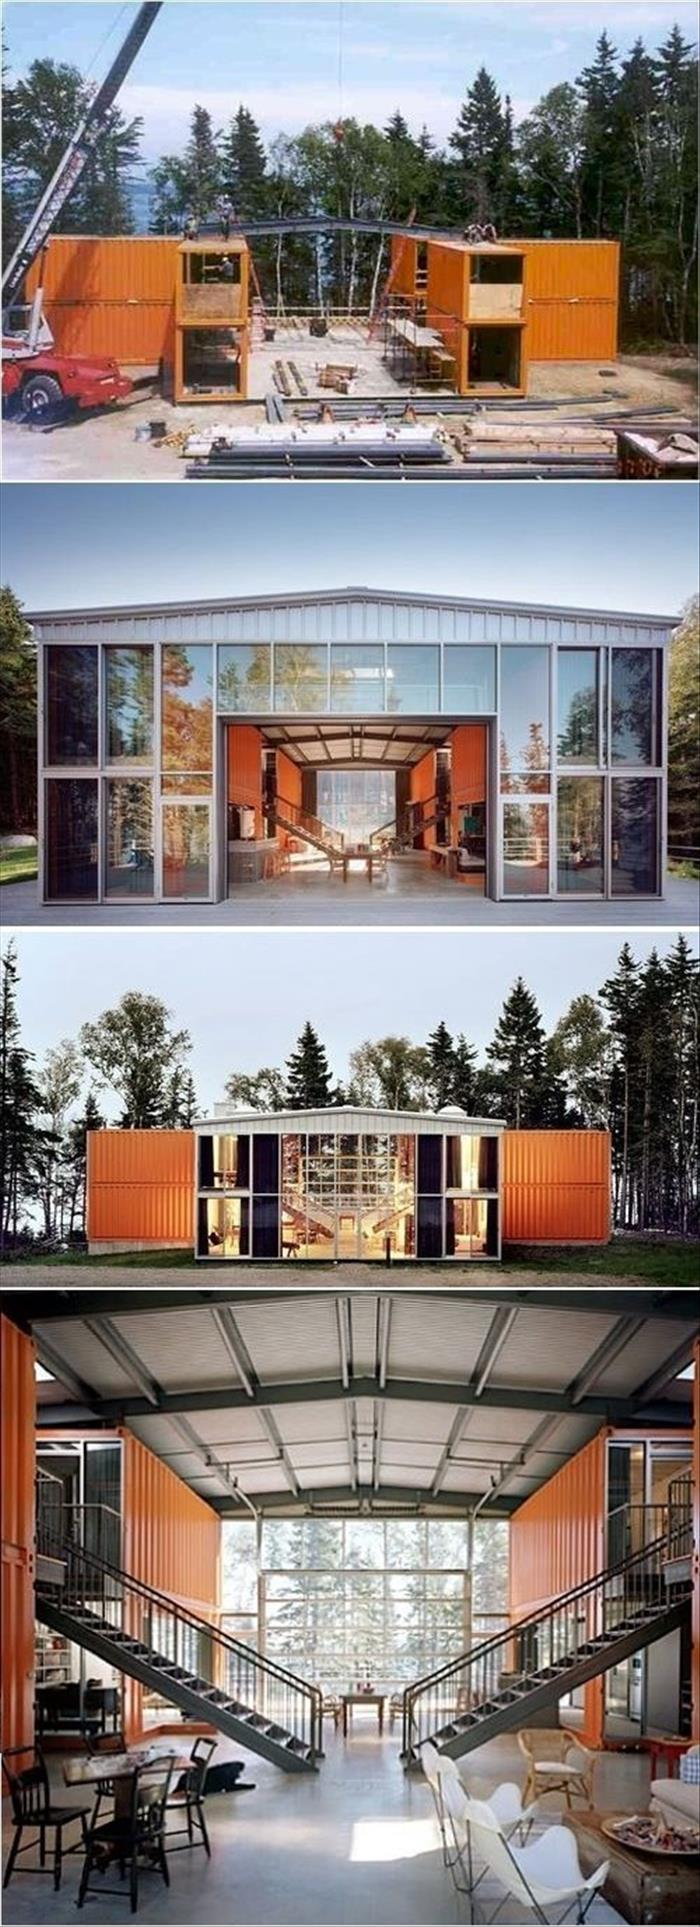 1 Shipping Container Homes That Will Blow